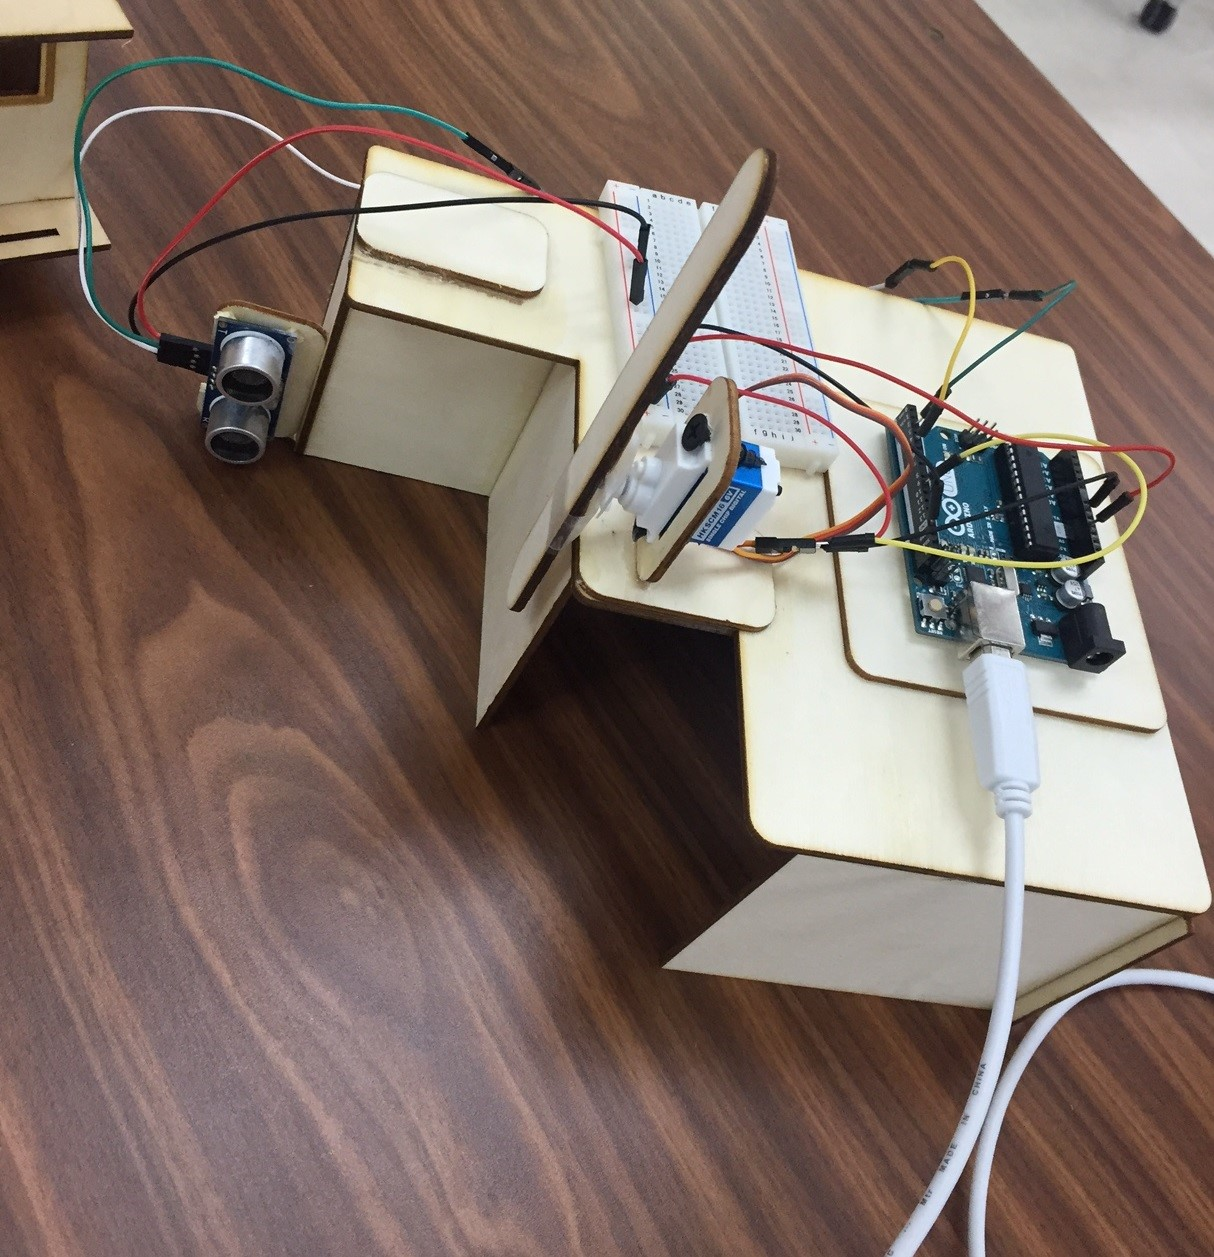 Picture of Controlling a Servo With Ultrasonic Sensor Signal Using Arduino ( Automated Gate System )